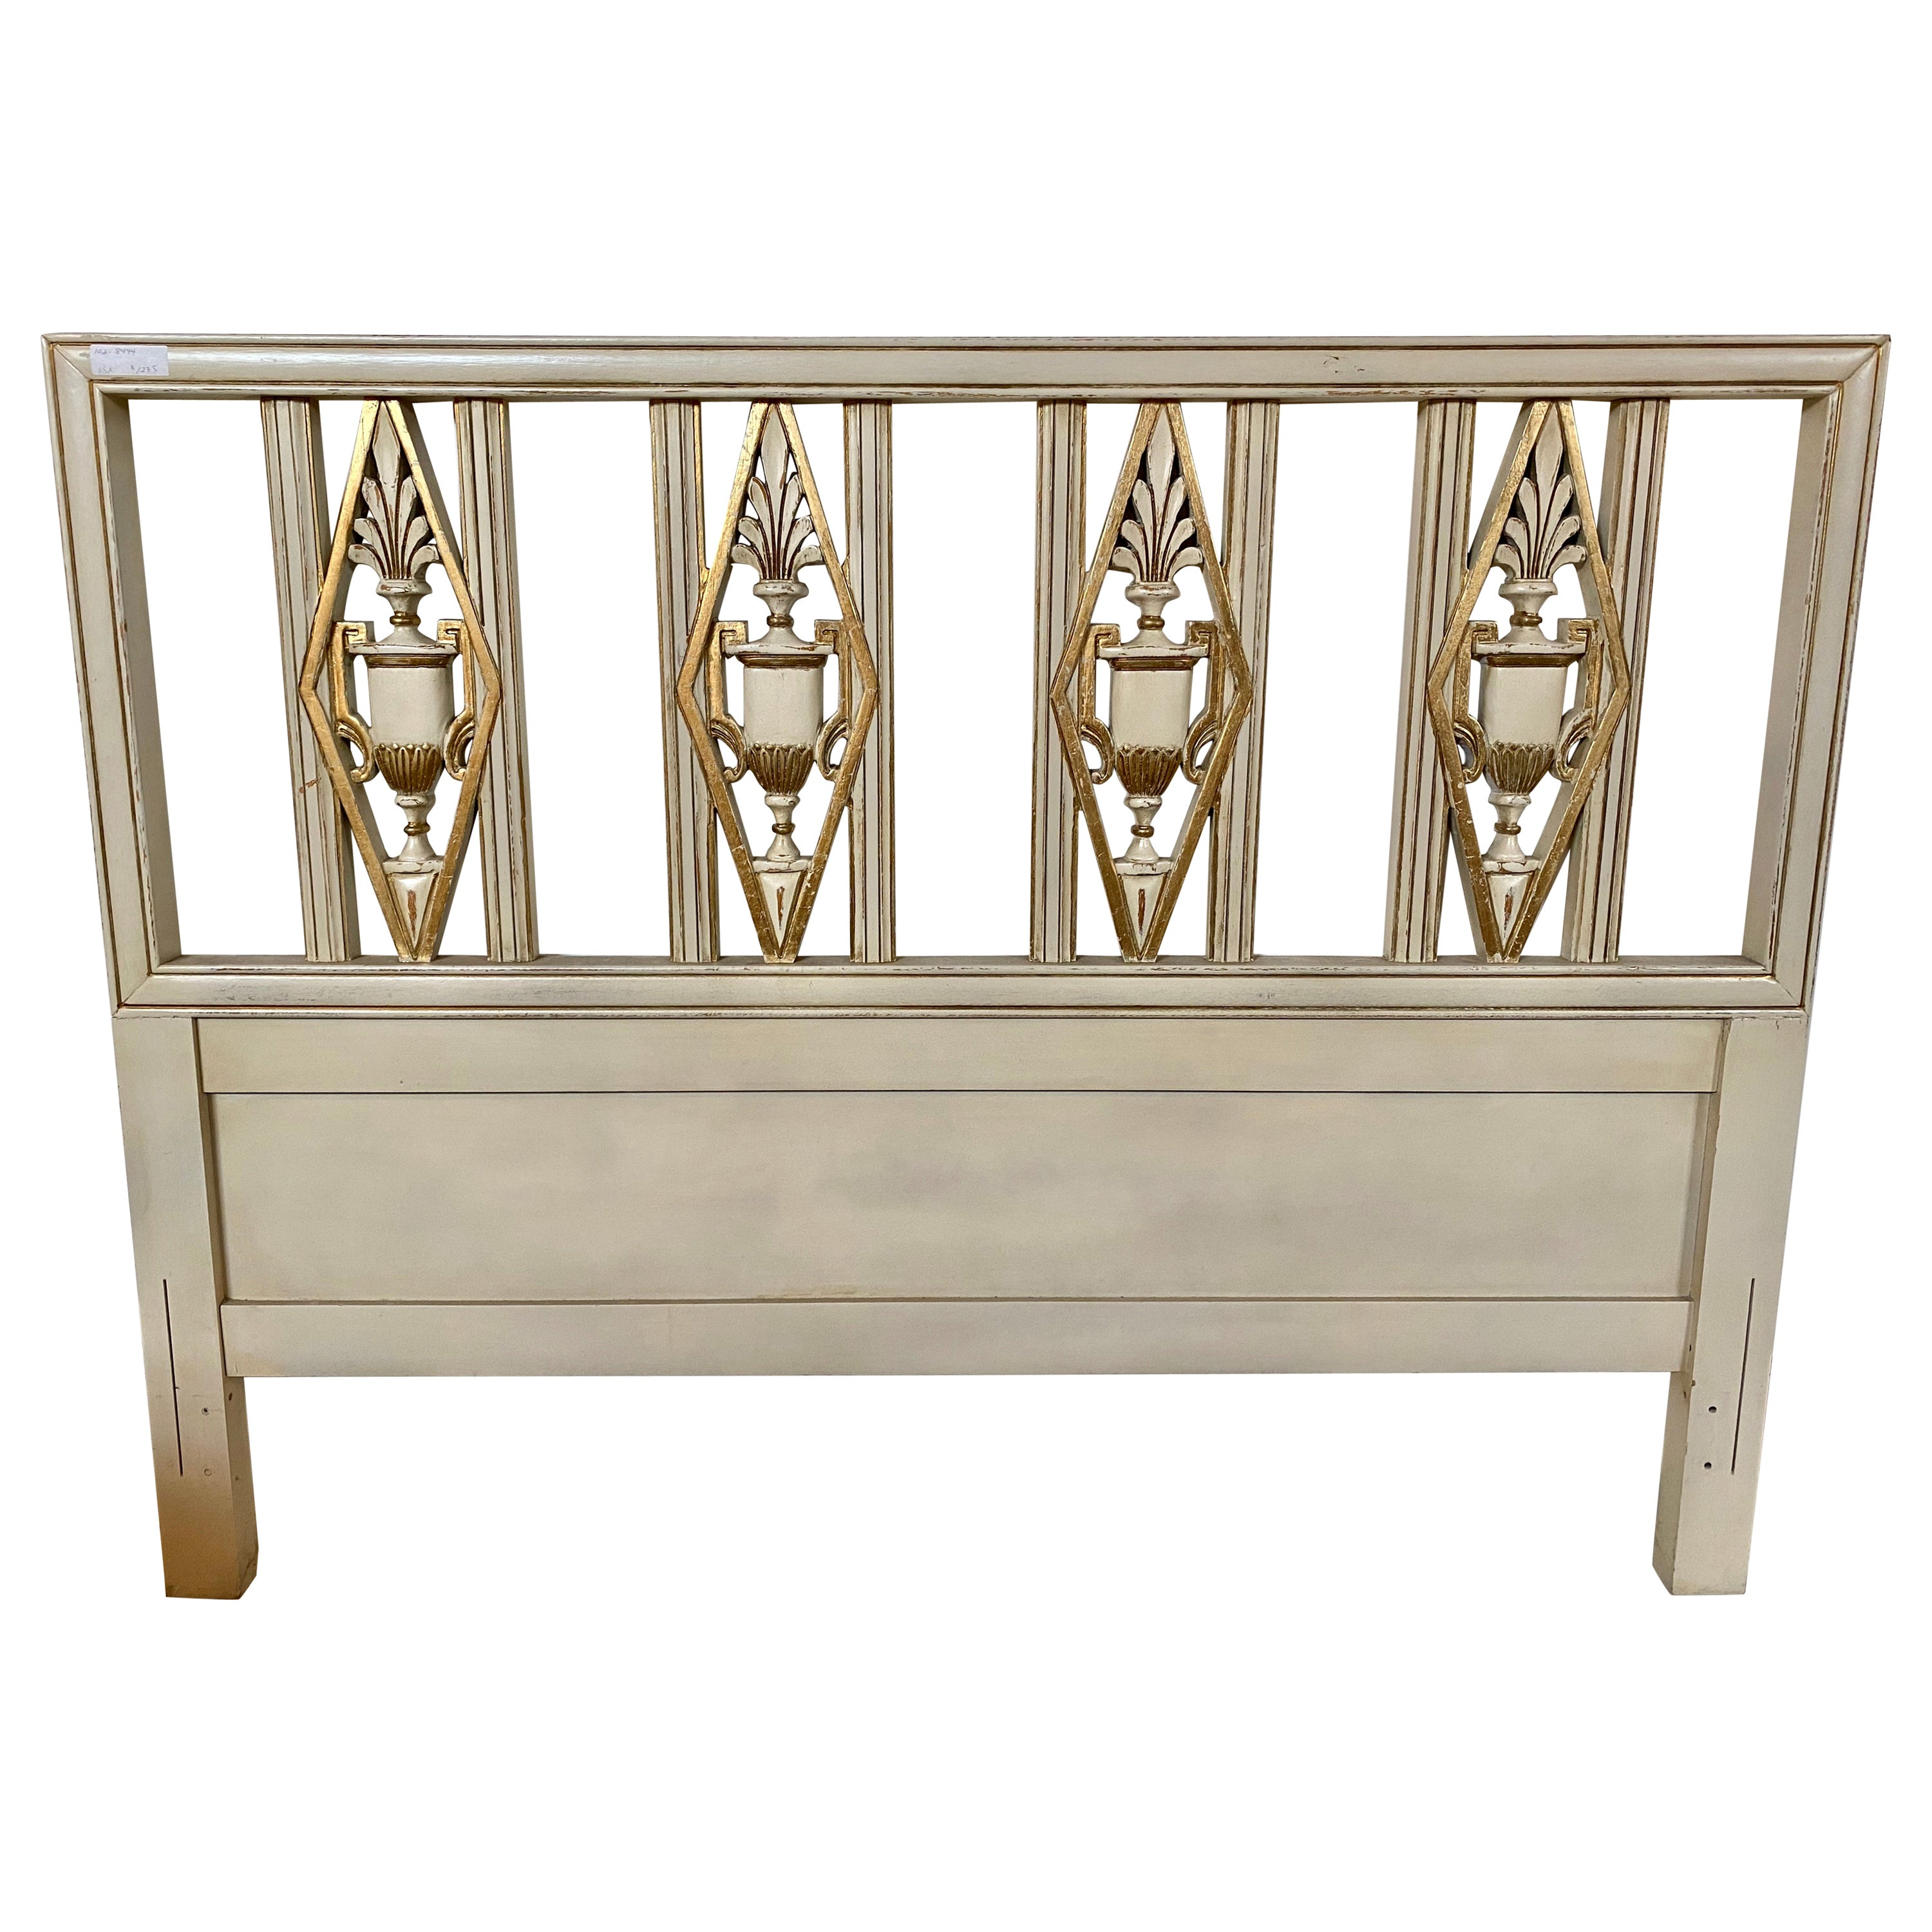 Hollywood Regency Headboard, Queen Size Bed, Gilt and Paint Decorated